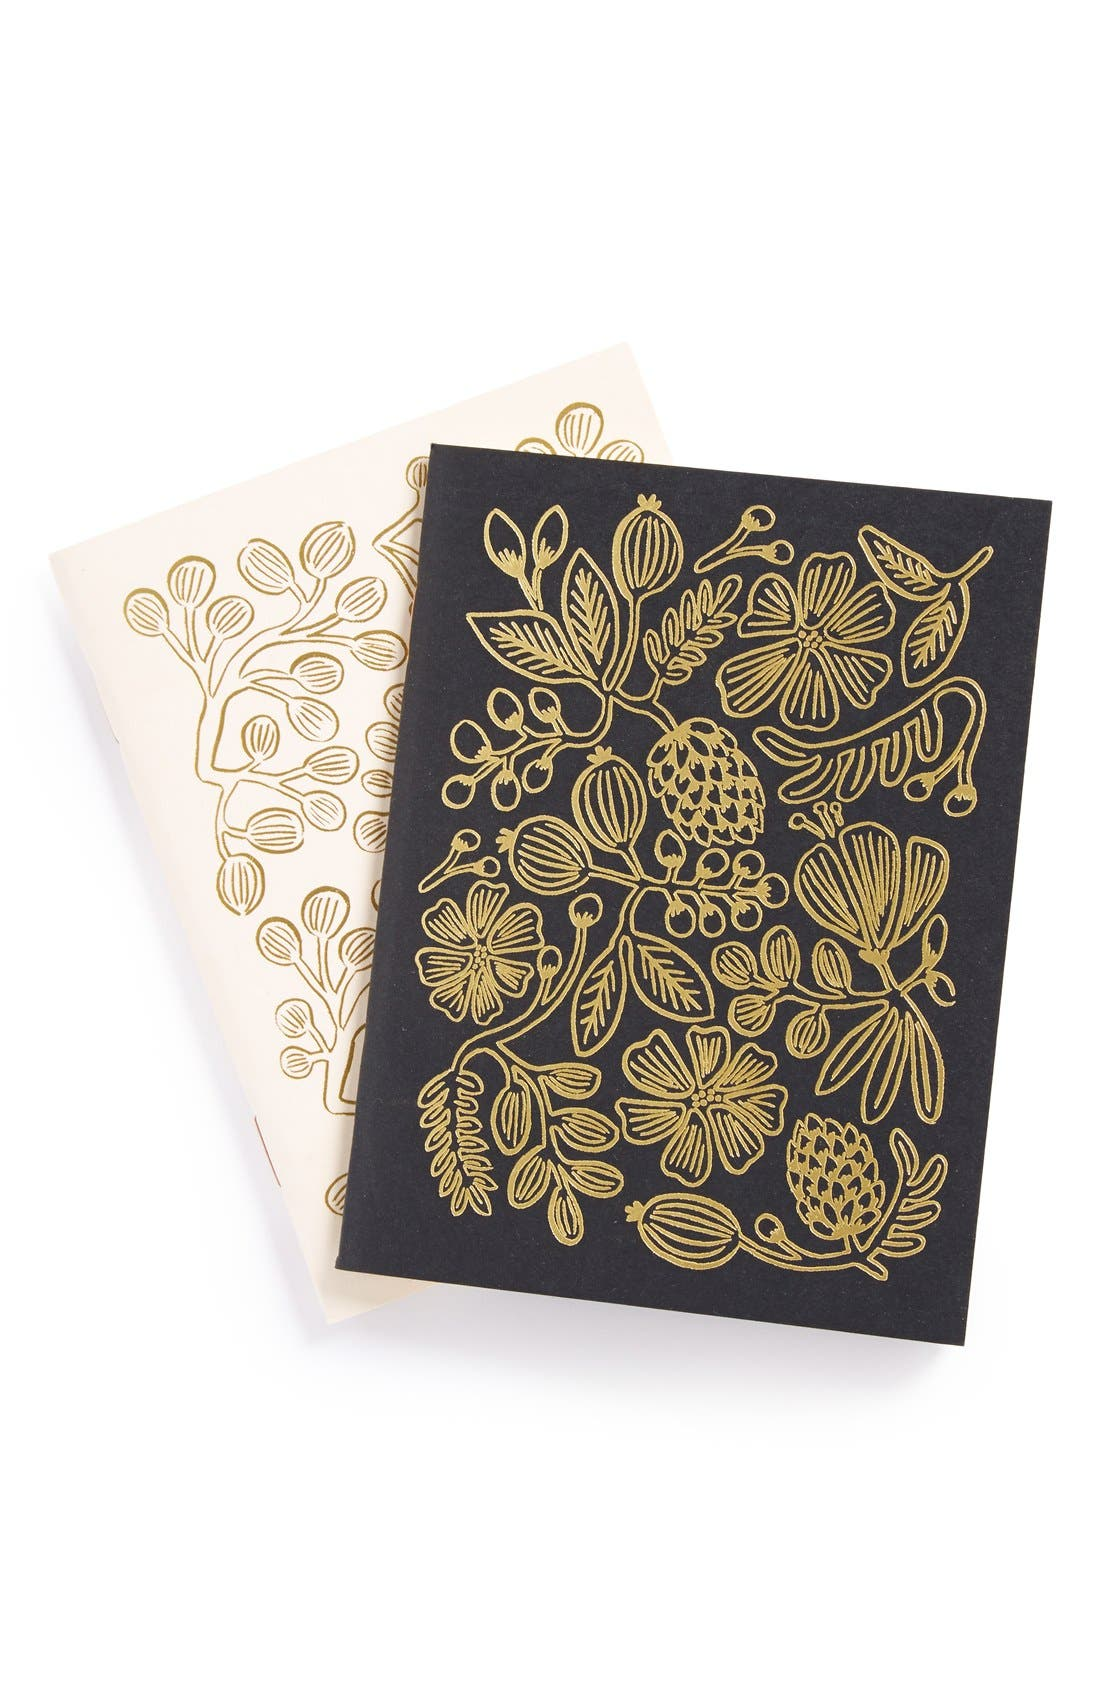 Alternate Image 1 Selected - Rifle Paper Co. Gold Foil Pocket Notebooks (Set of 2)